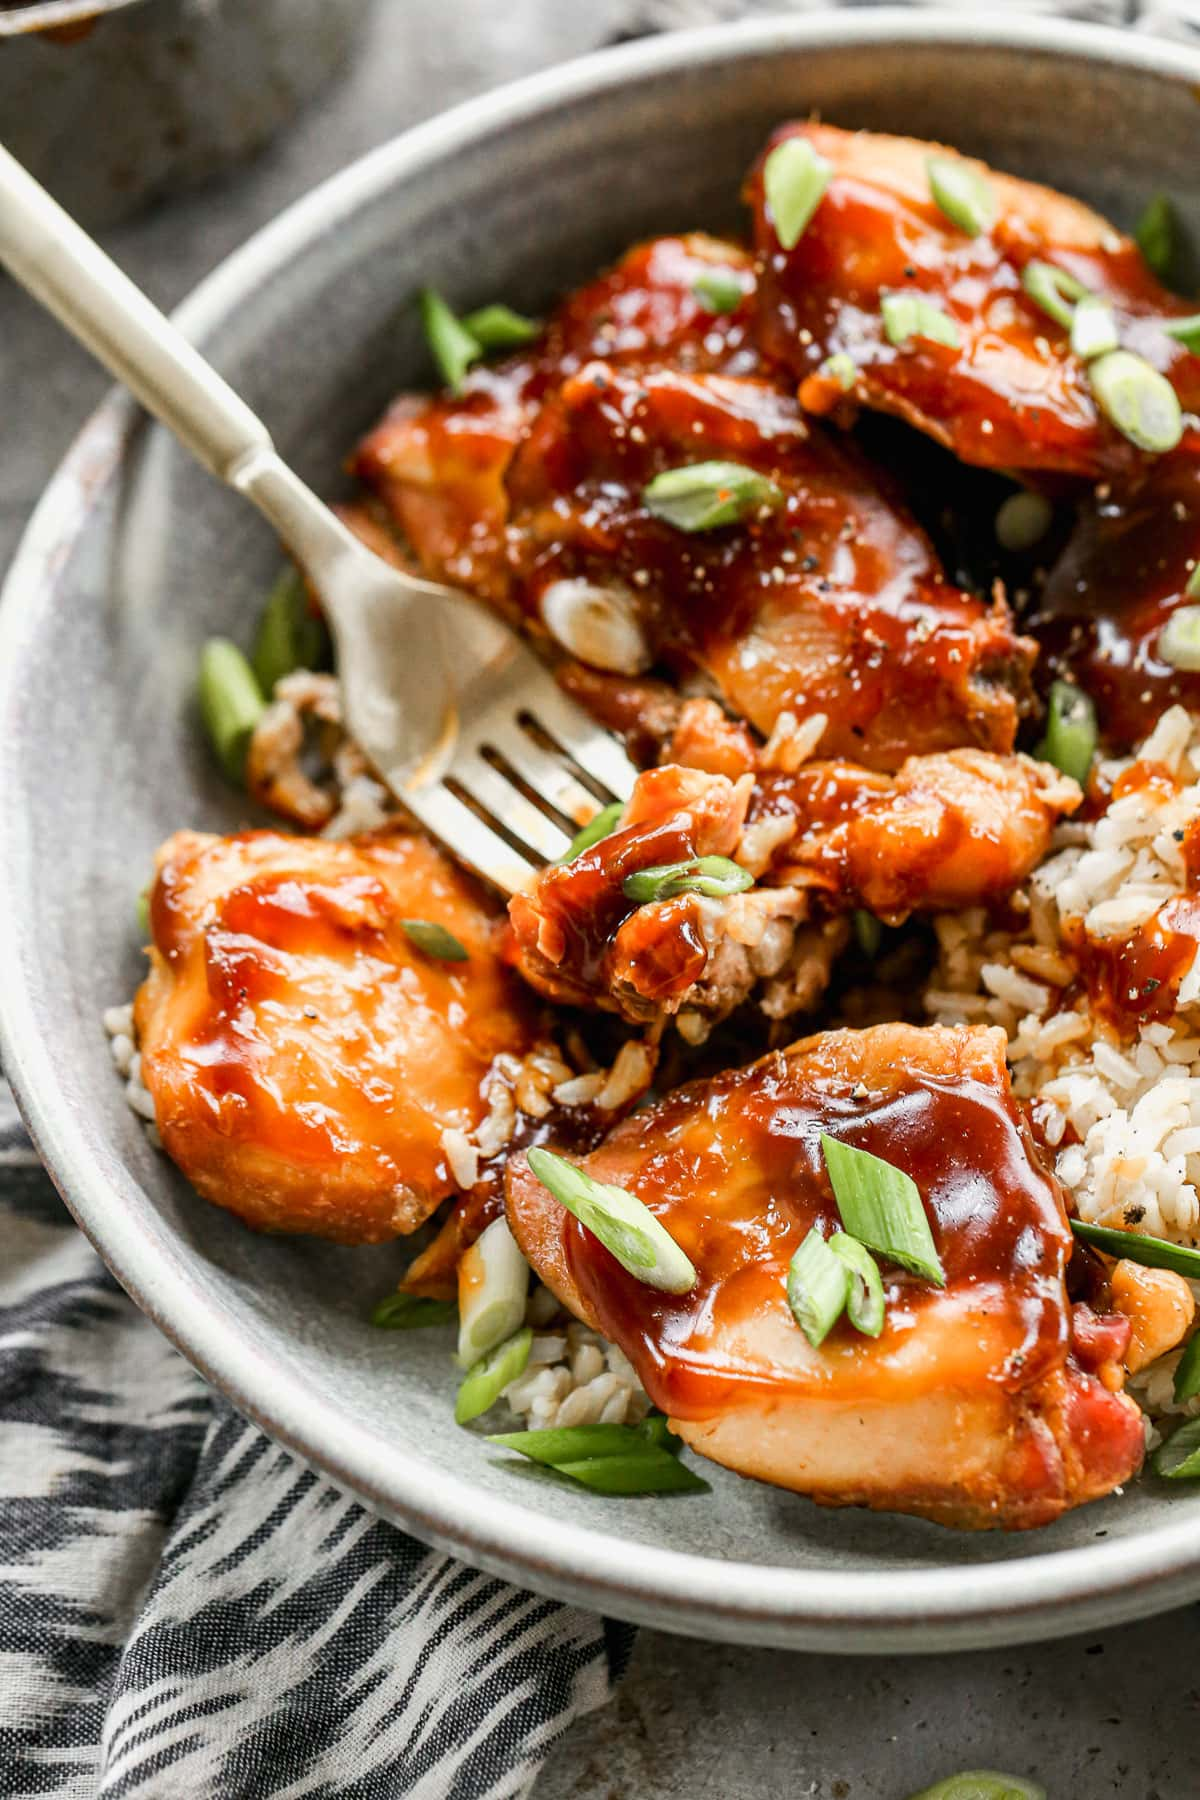 Bourbon adds a smoky depth to this easy slow-cooker chicken. Get the recipe from Delish.